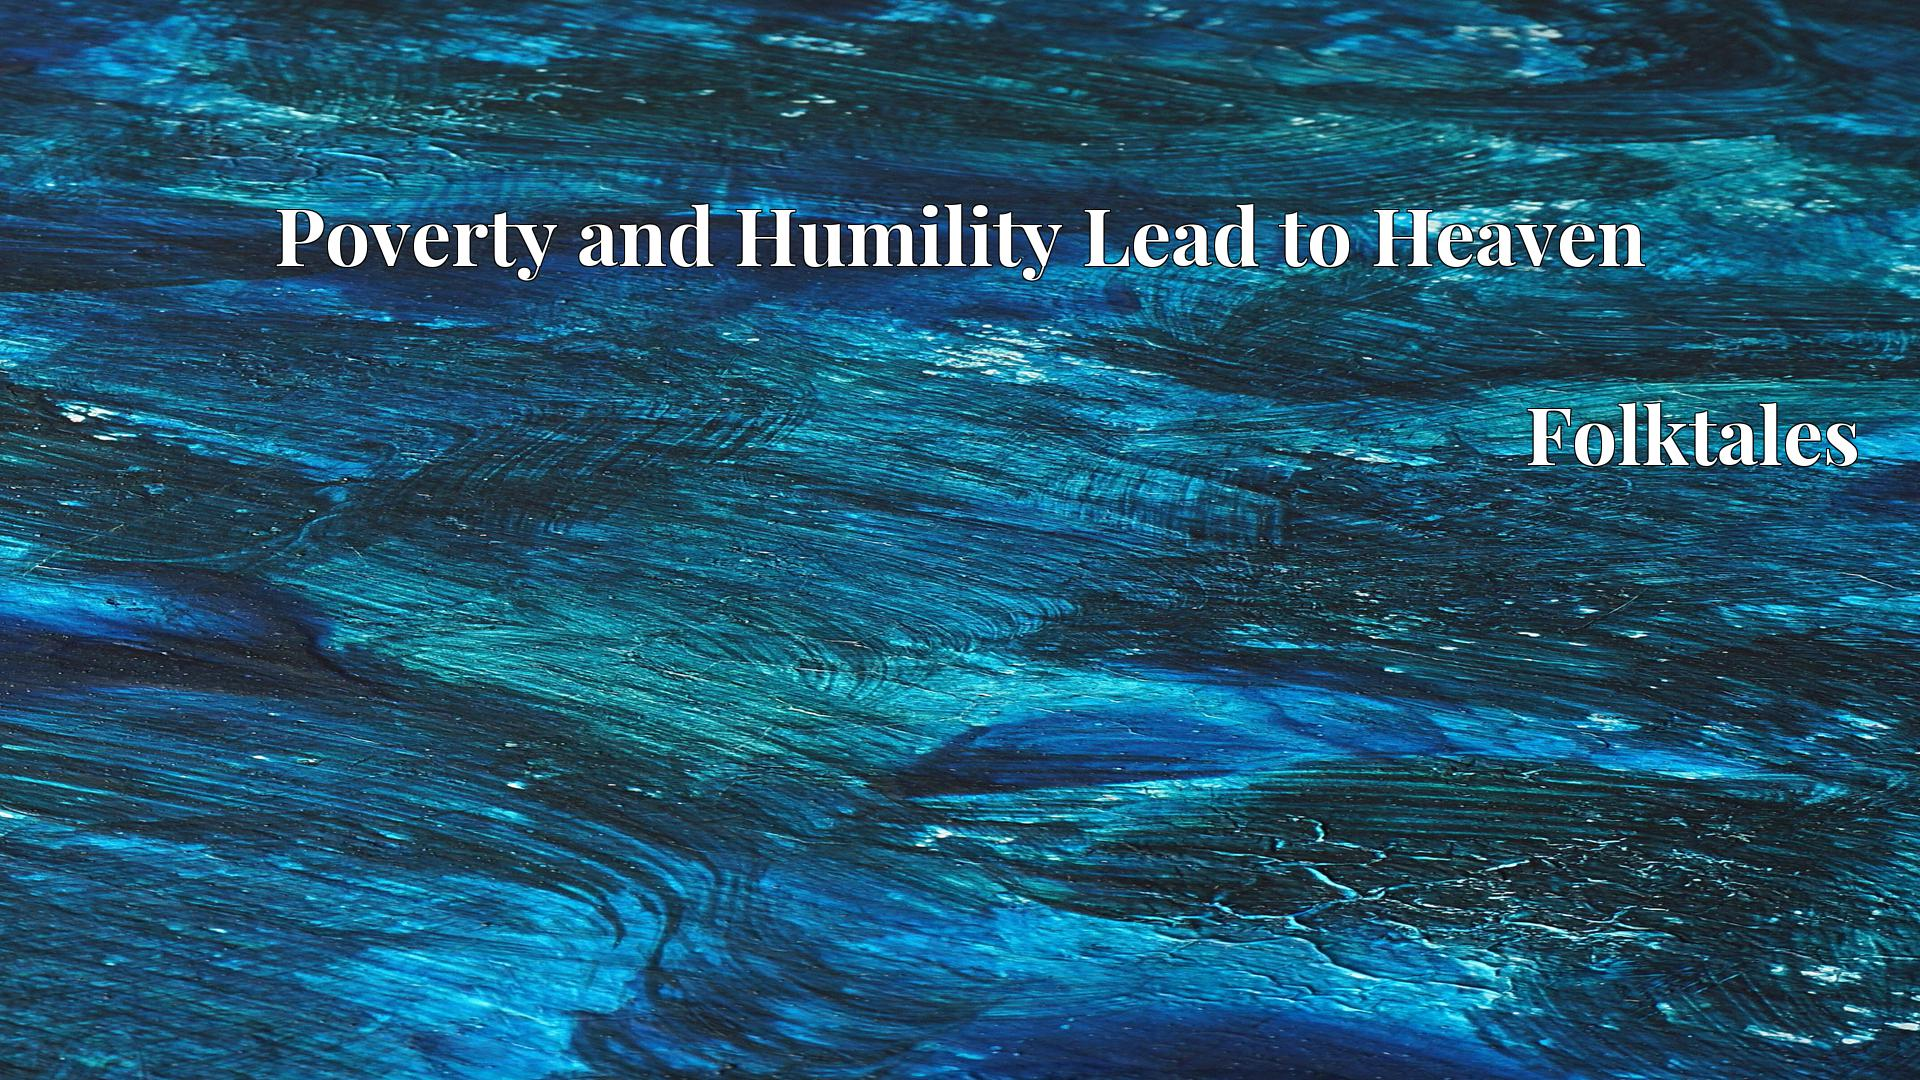 Poverty and Humility Lead to Heaven - Folktales